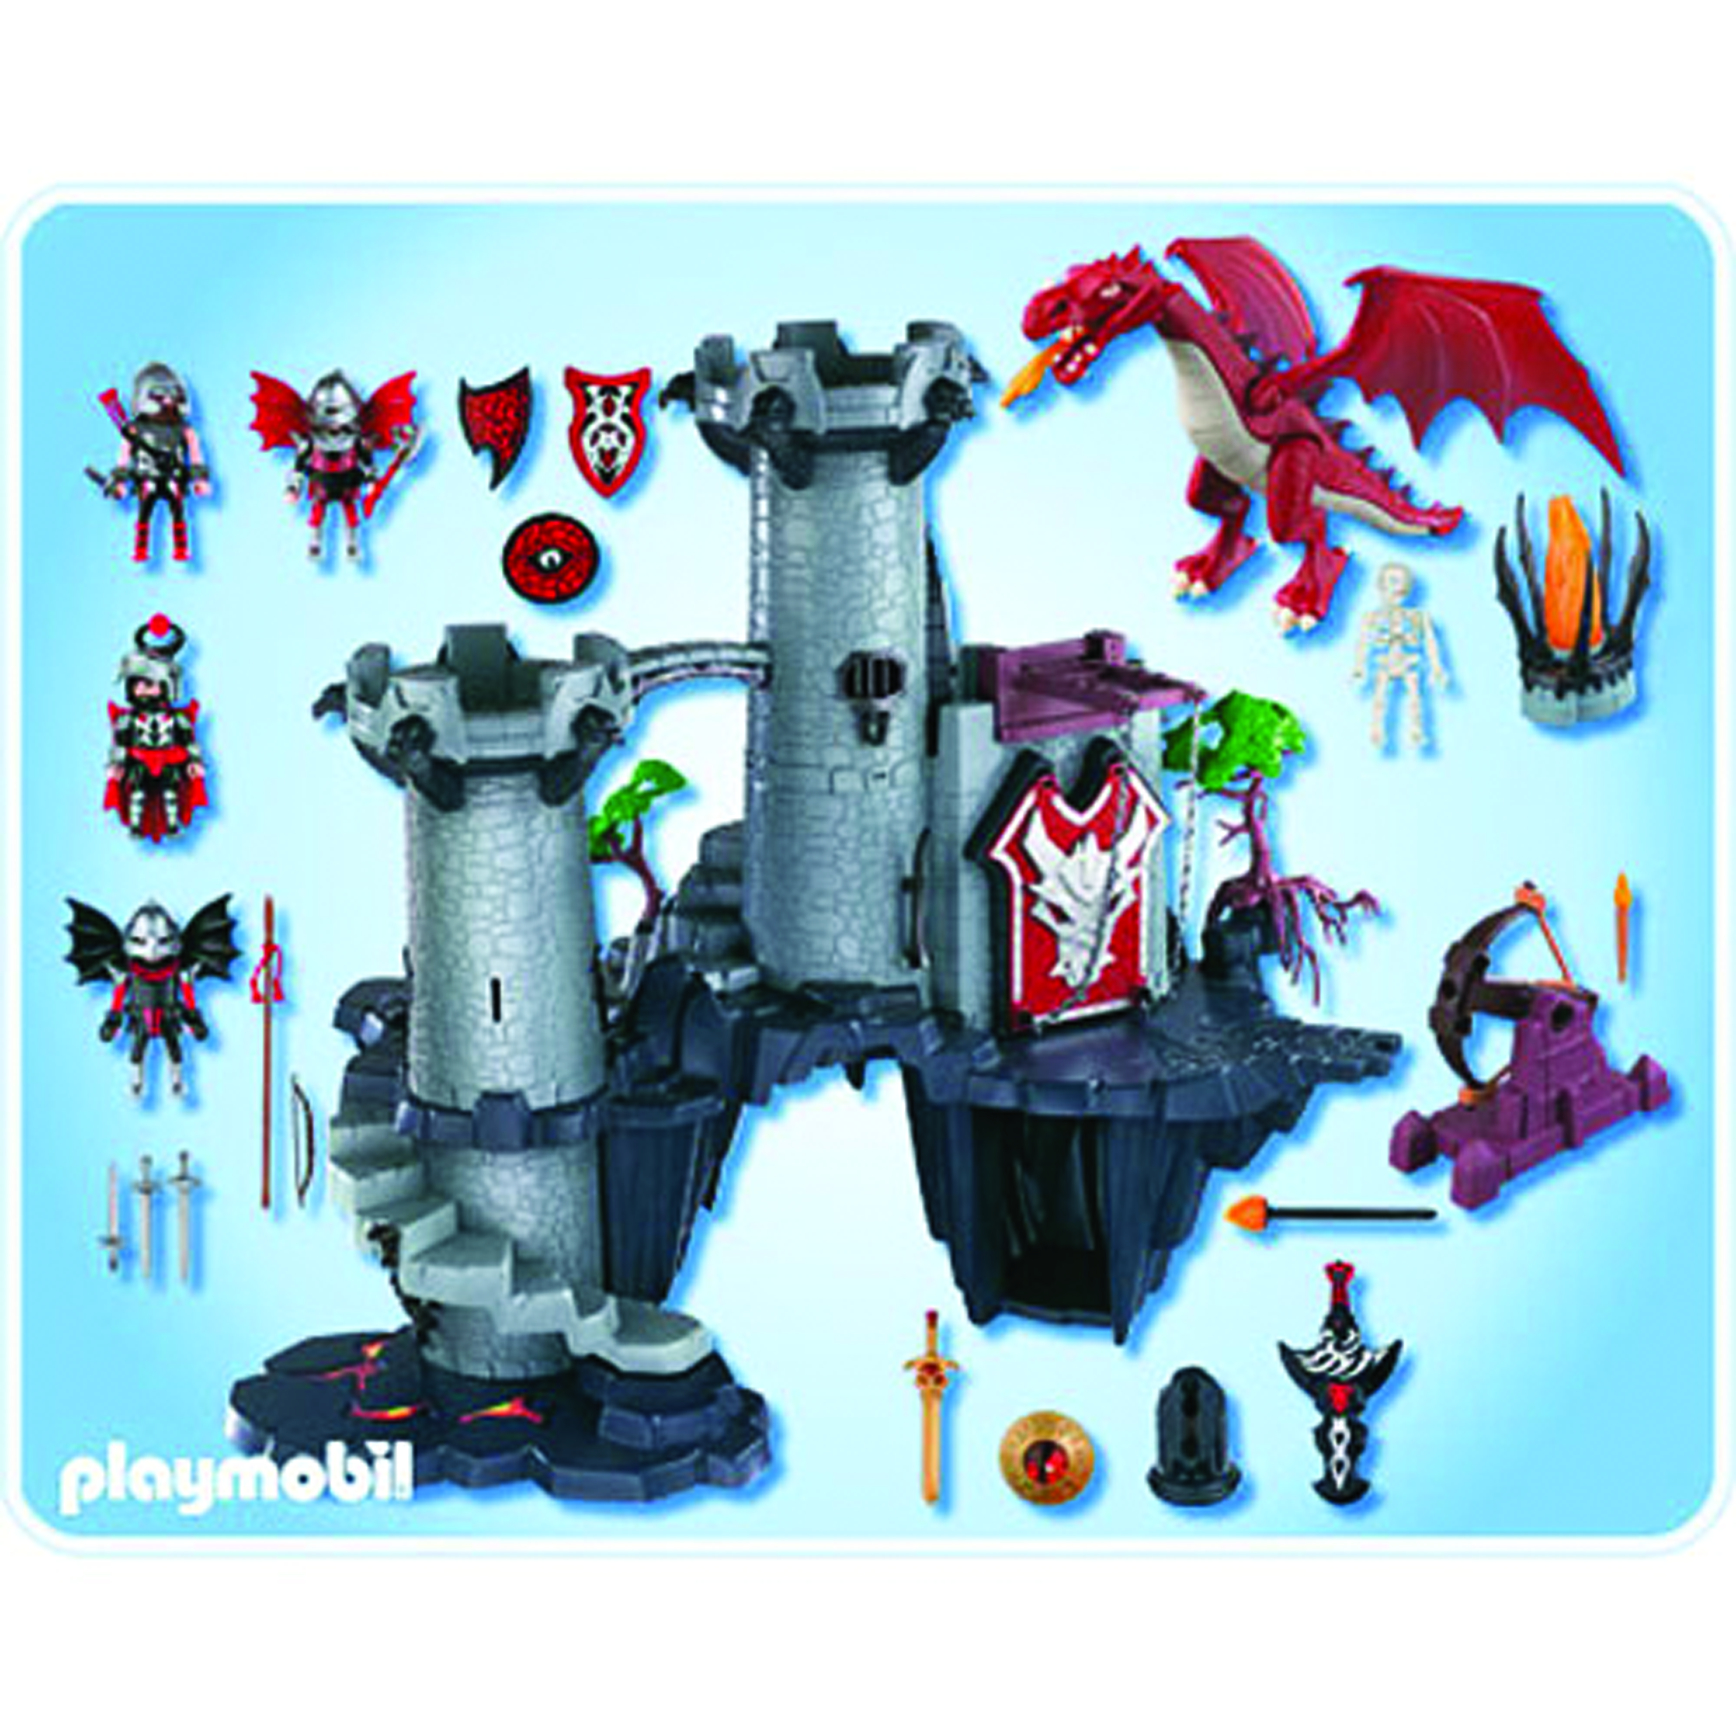 dec111715 playmobil dragons land great dragon castle. Black Bedroom Furniture Sets. Home Design Ideas